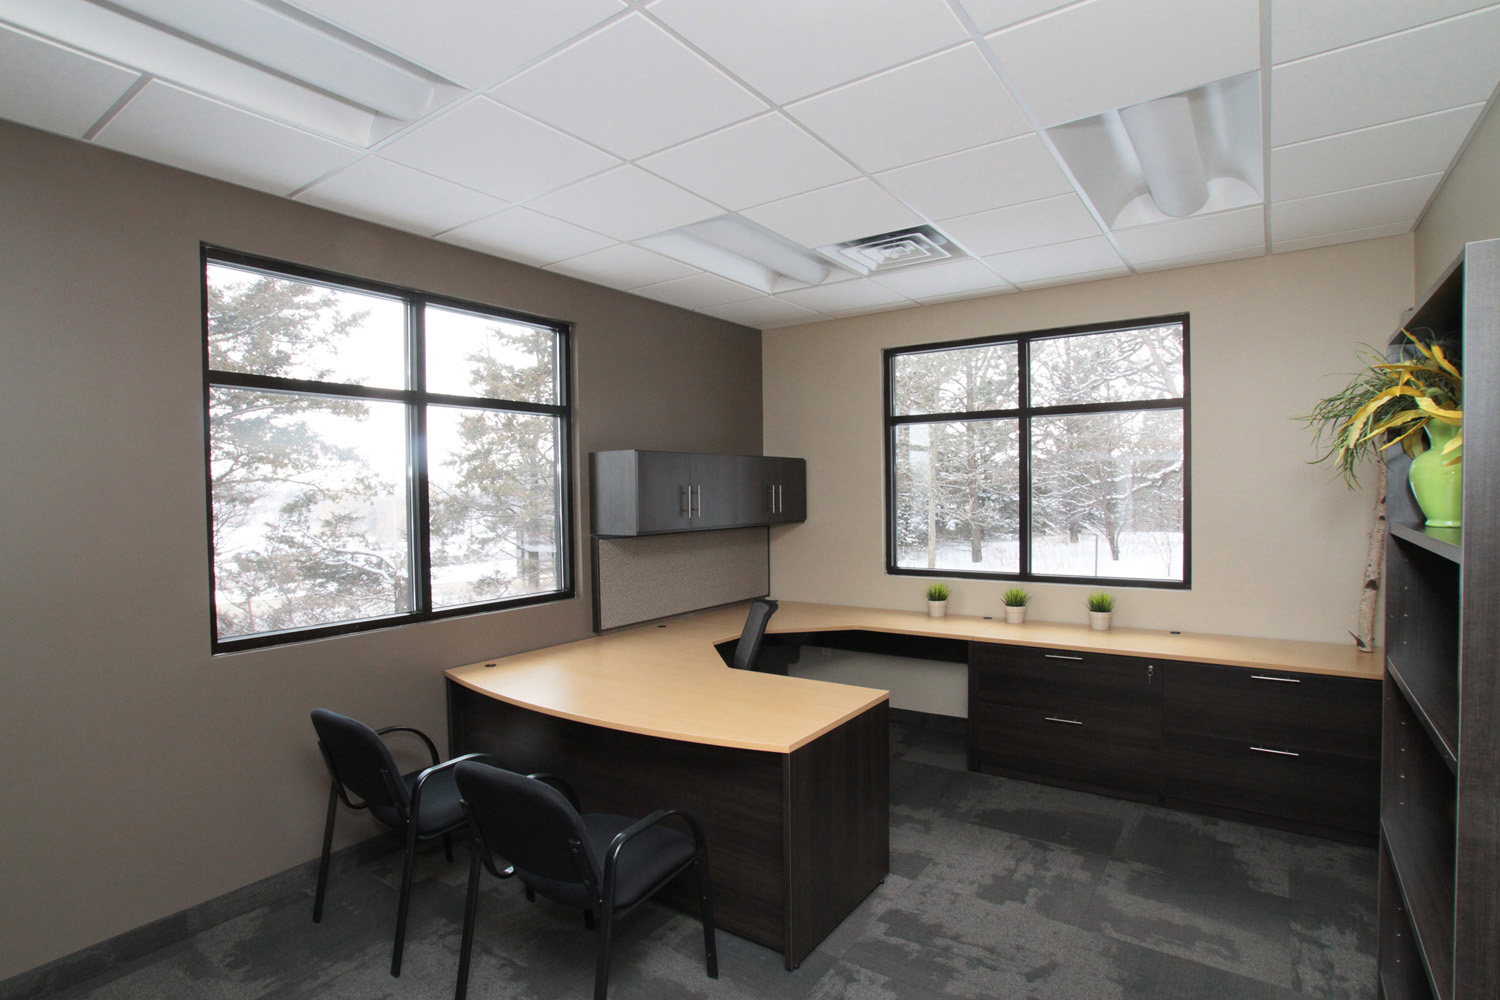 office space design mankato | new & used office furnishings | mankato